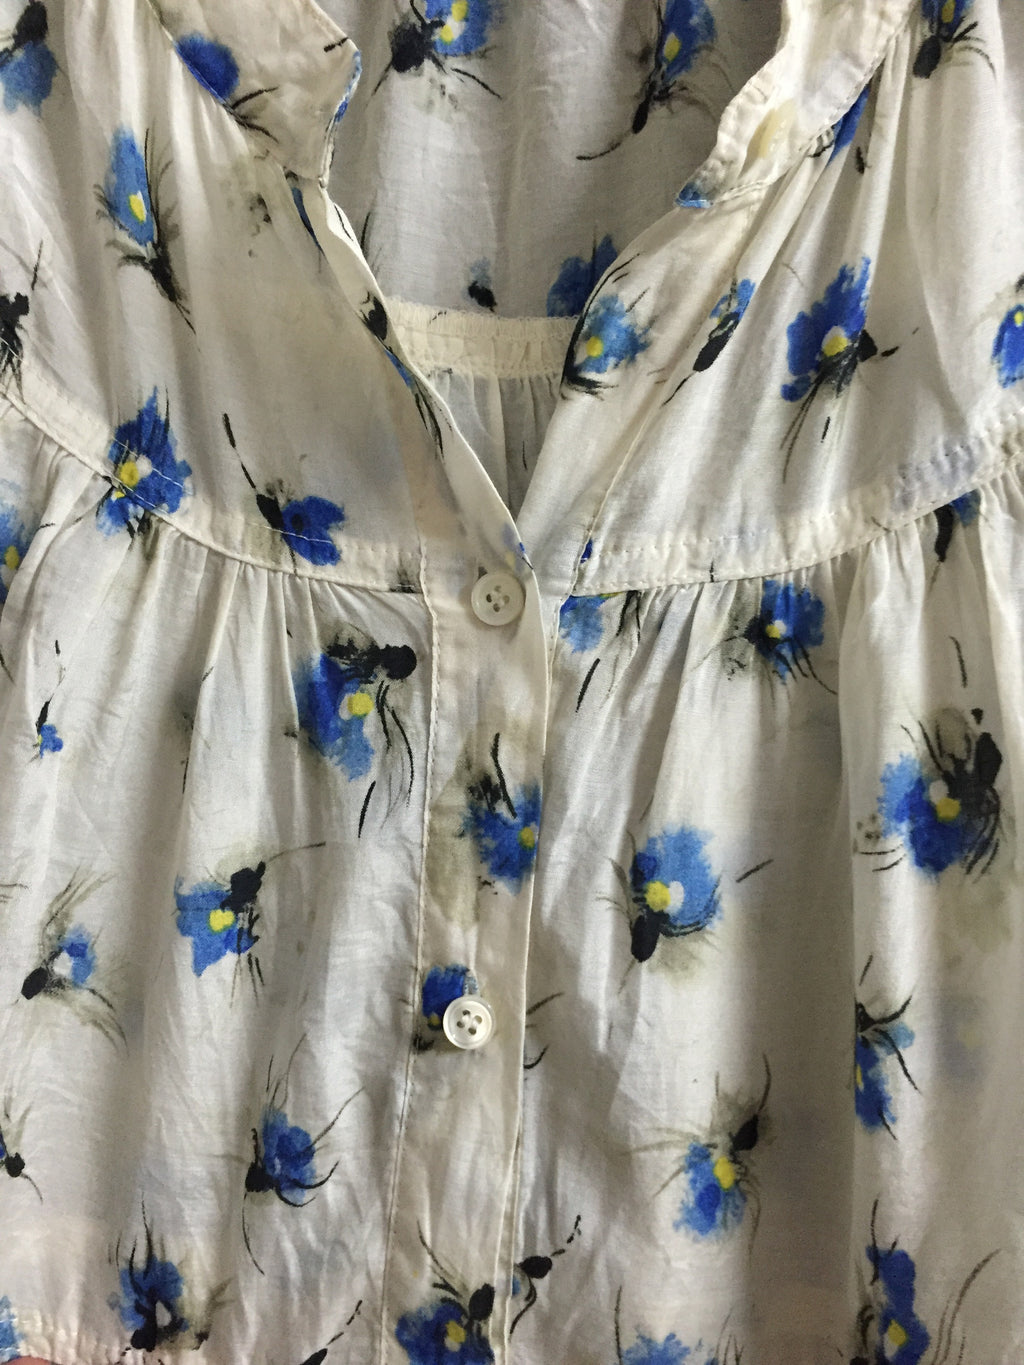 Blue Flowers Cream Top - #FTFY - For The Fun Years